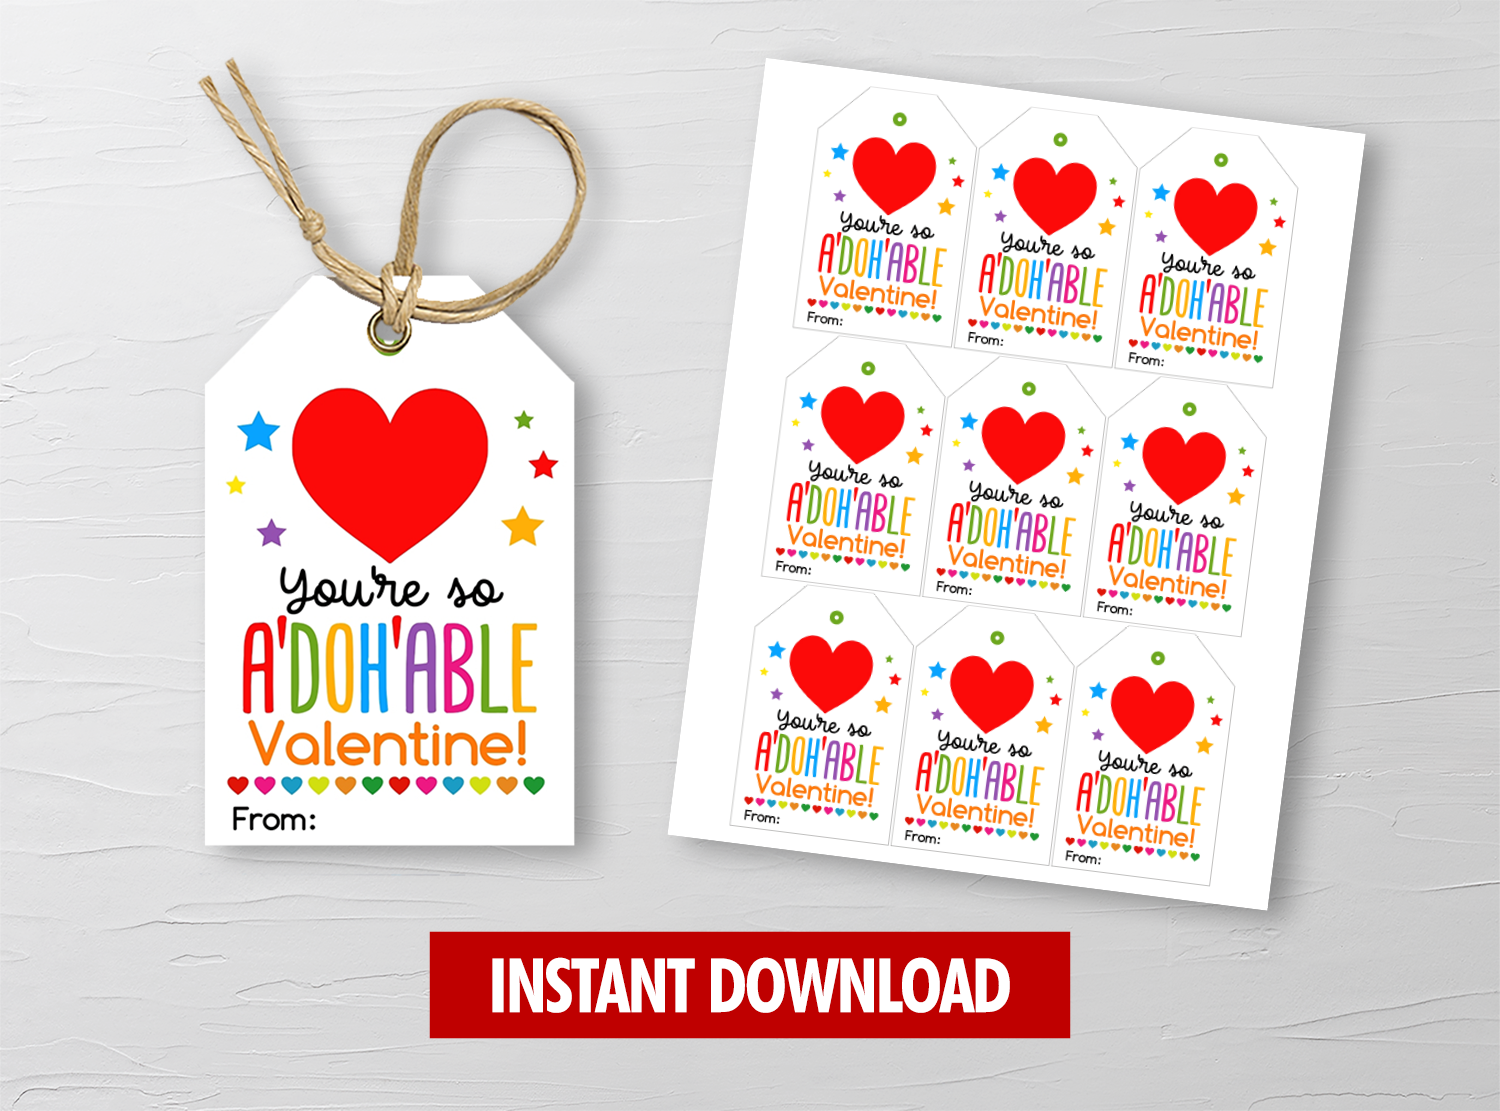 You're so A-DOH-ABLE Valentine's Day Card, Play Dough Gift Tags, School Exchange Ideas, INSTANT DOWNLOAD - TitaTipsPrintables